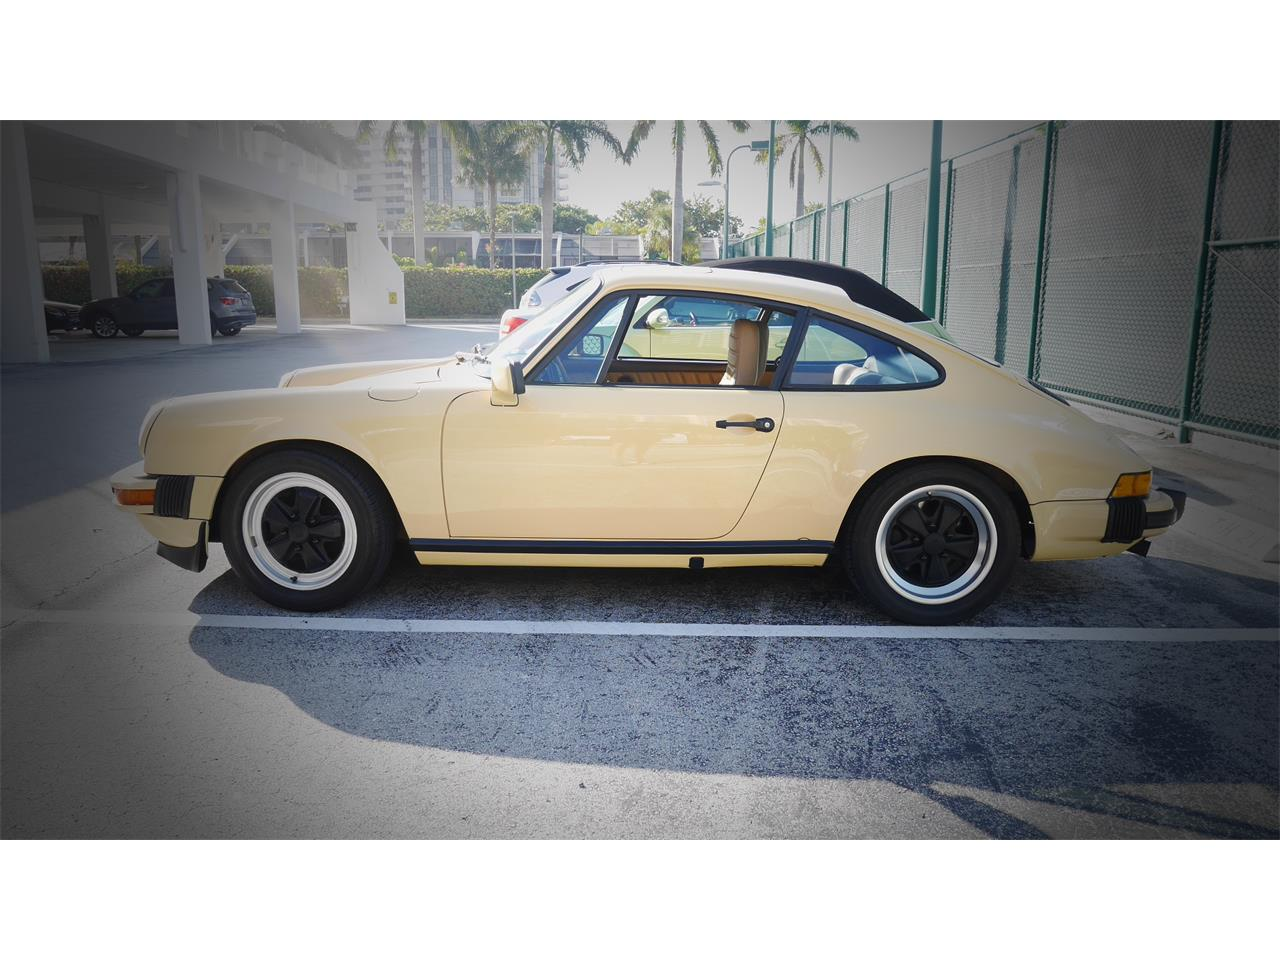 Large Picture of '81 Porsche 911SC located in Miami Florida - $35,500.00 Offered by a Private Seller - M3DA